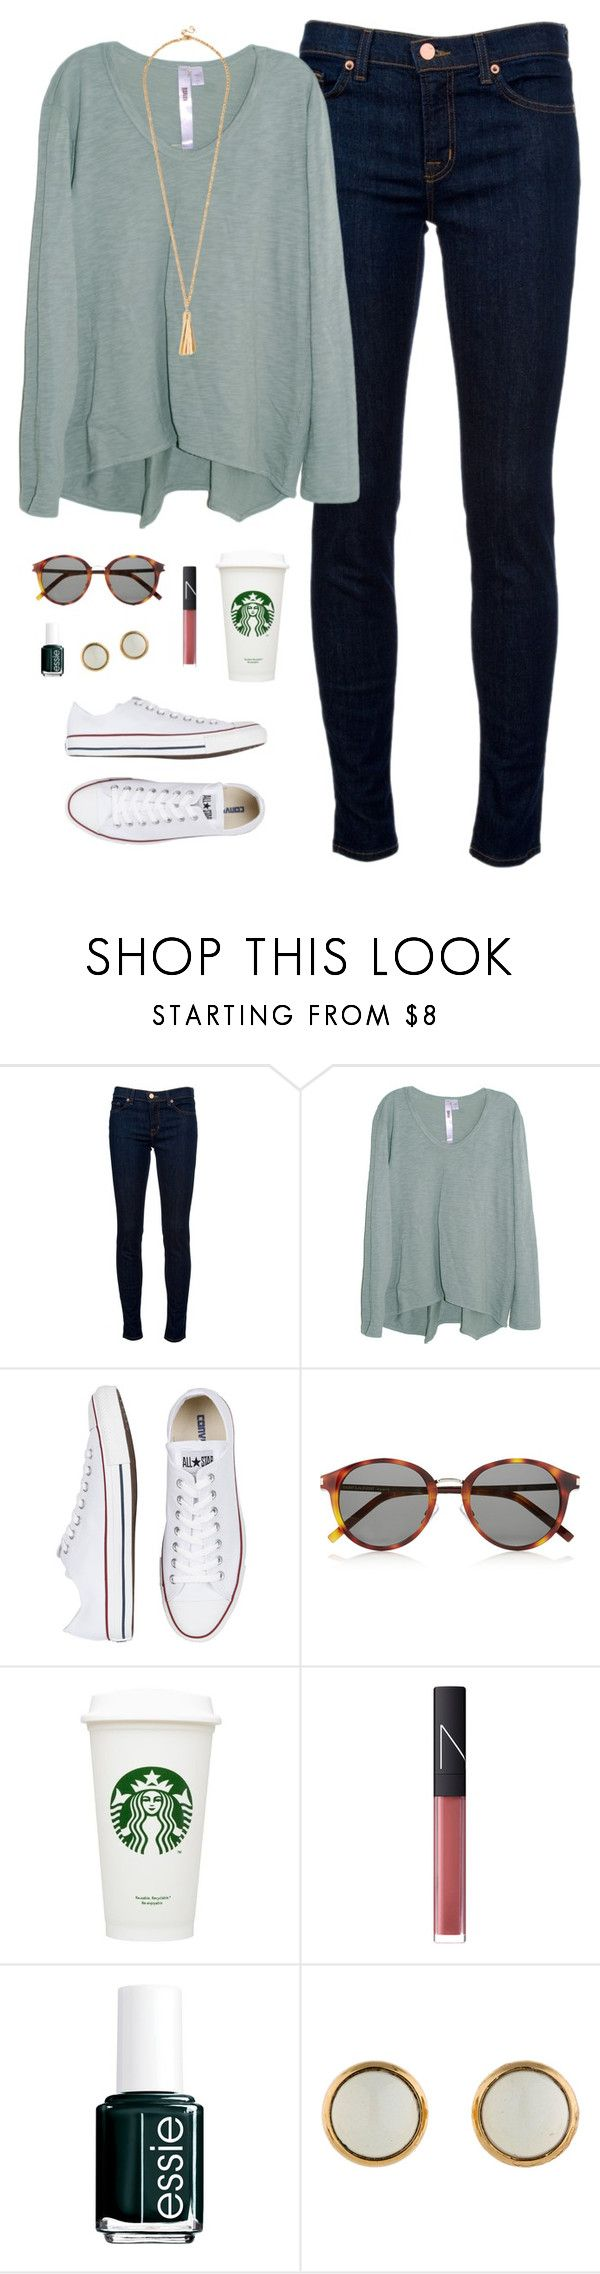 """sweater time of year"" by classically-preppy ❤ liked on Polyvore featuring J Brand, Wilt, Converse, Yves Saint Laurent, NARS Cosmetics, Essie and Hermès"